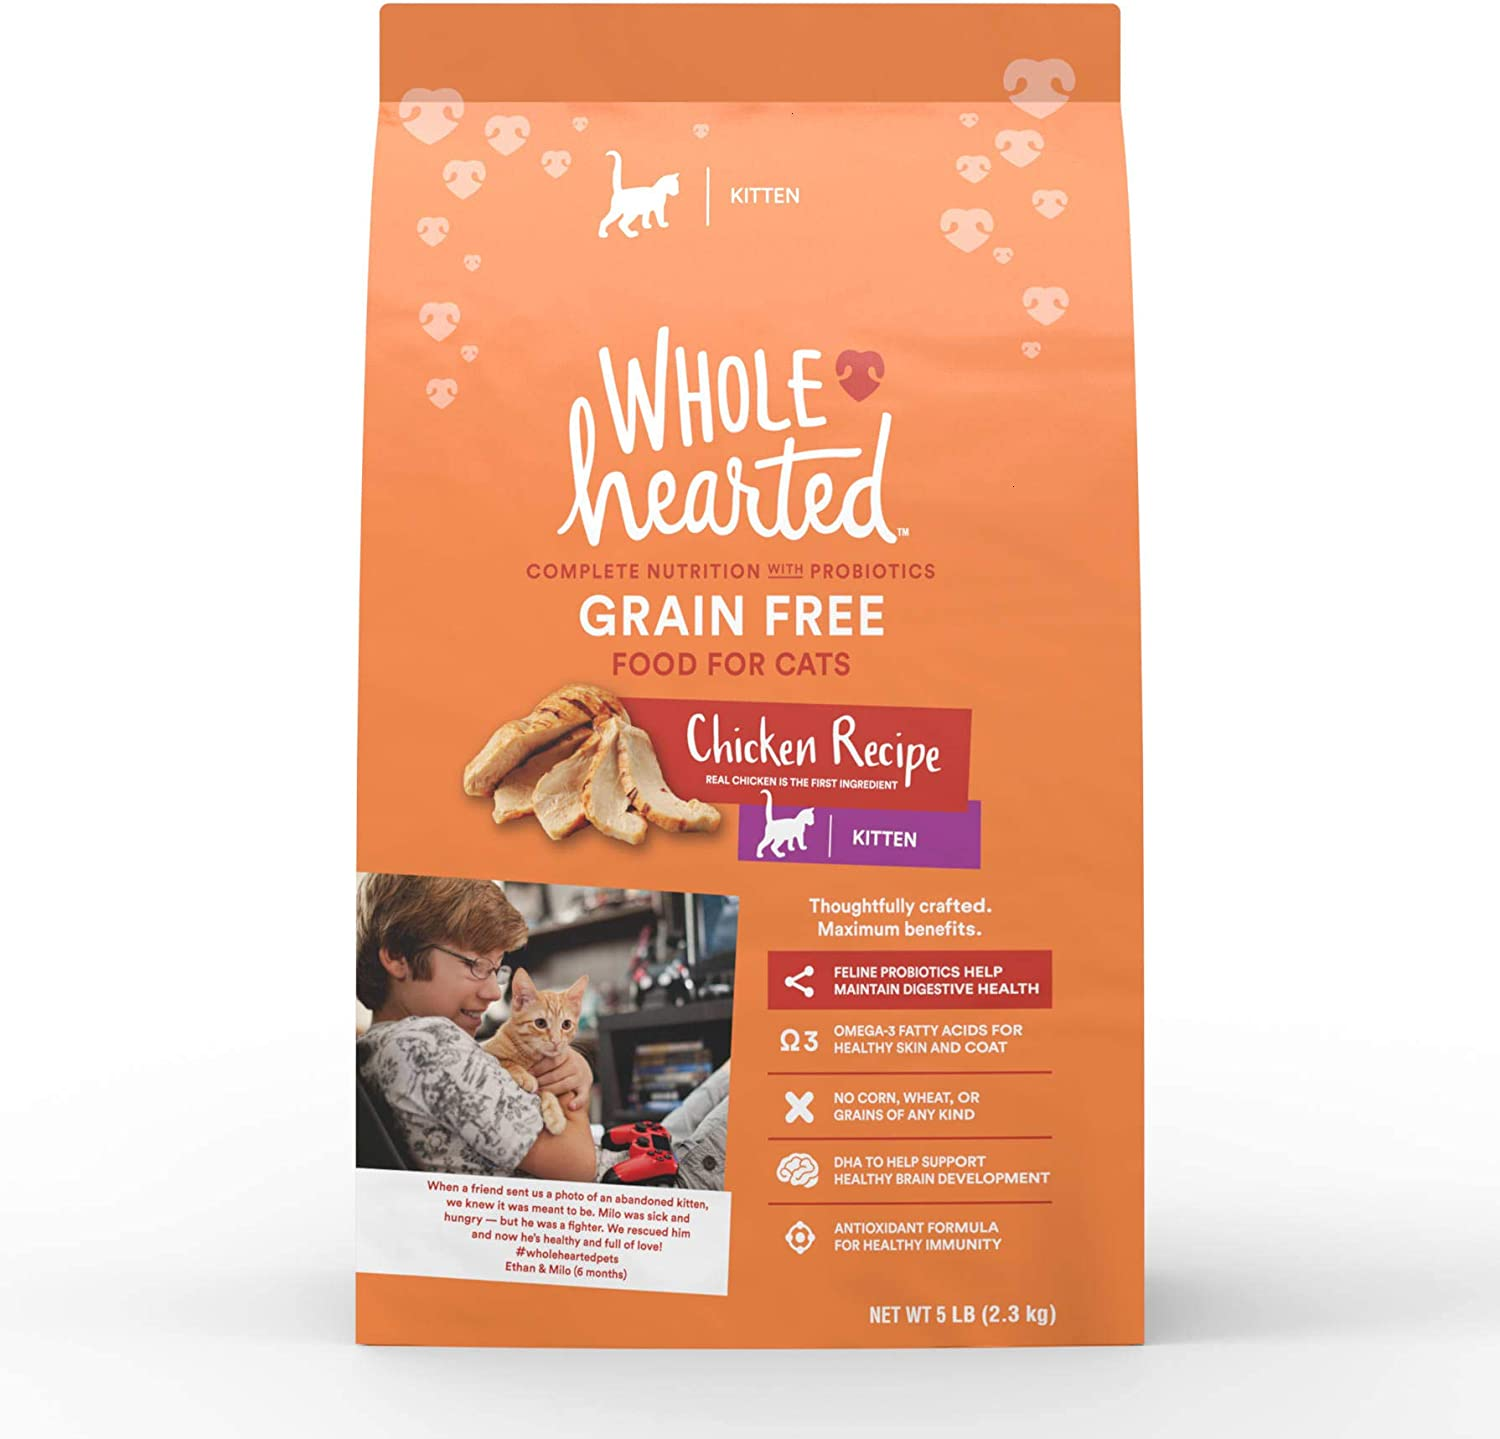 Petco Brand - WholeHearted Grain-Free Chicken Recipe Dry Kitten Food, 5 lbs.